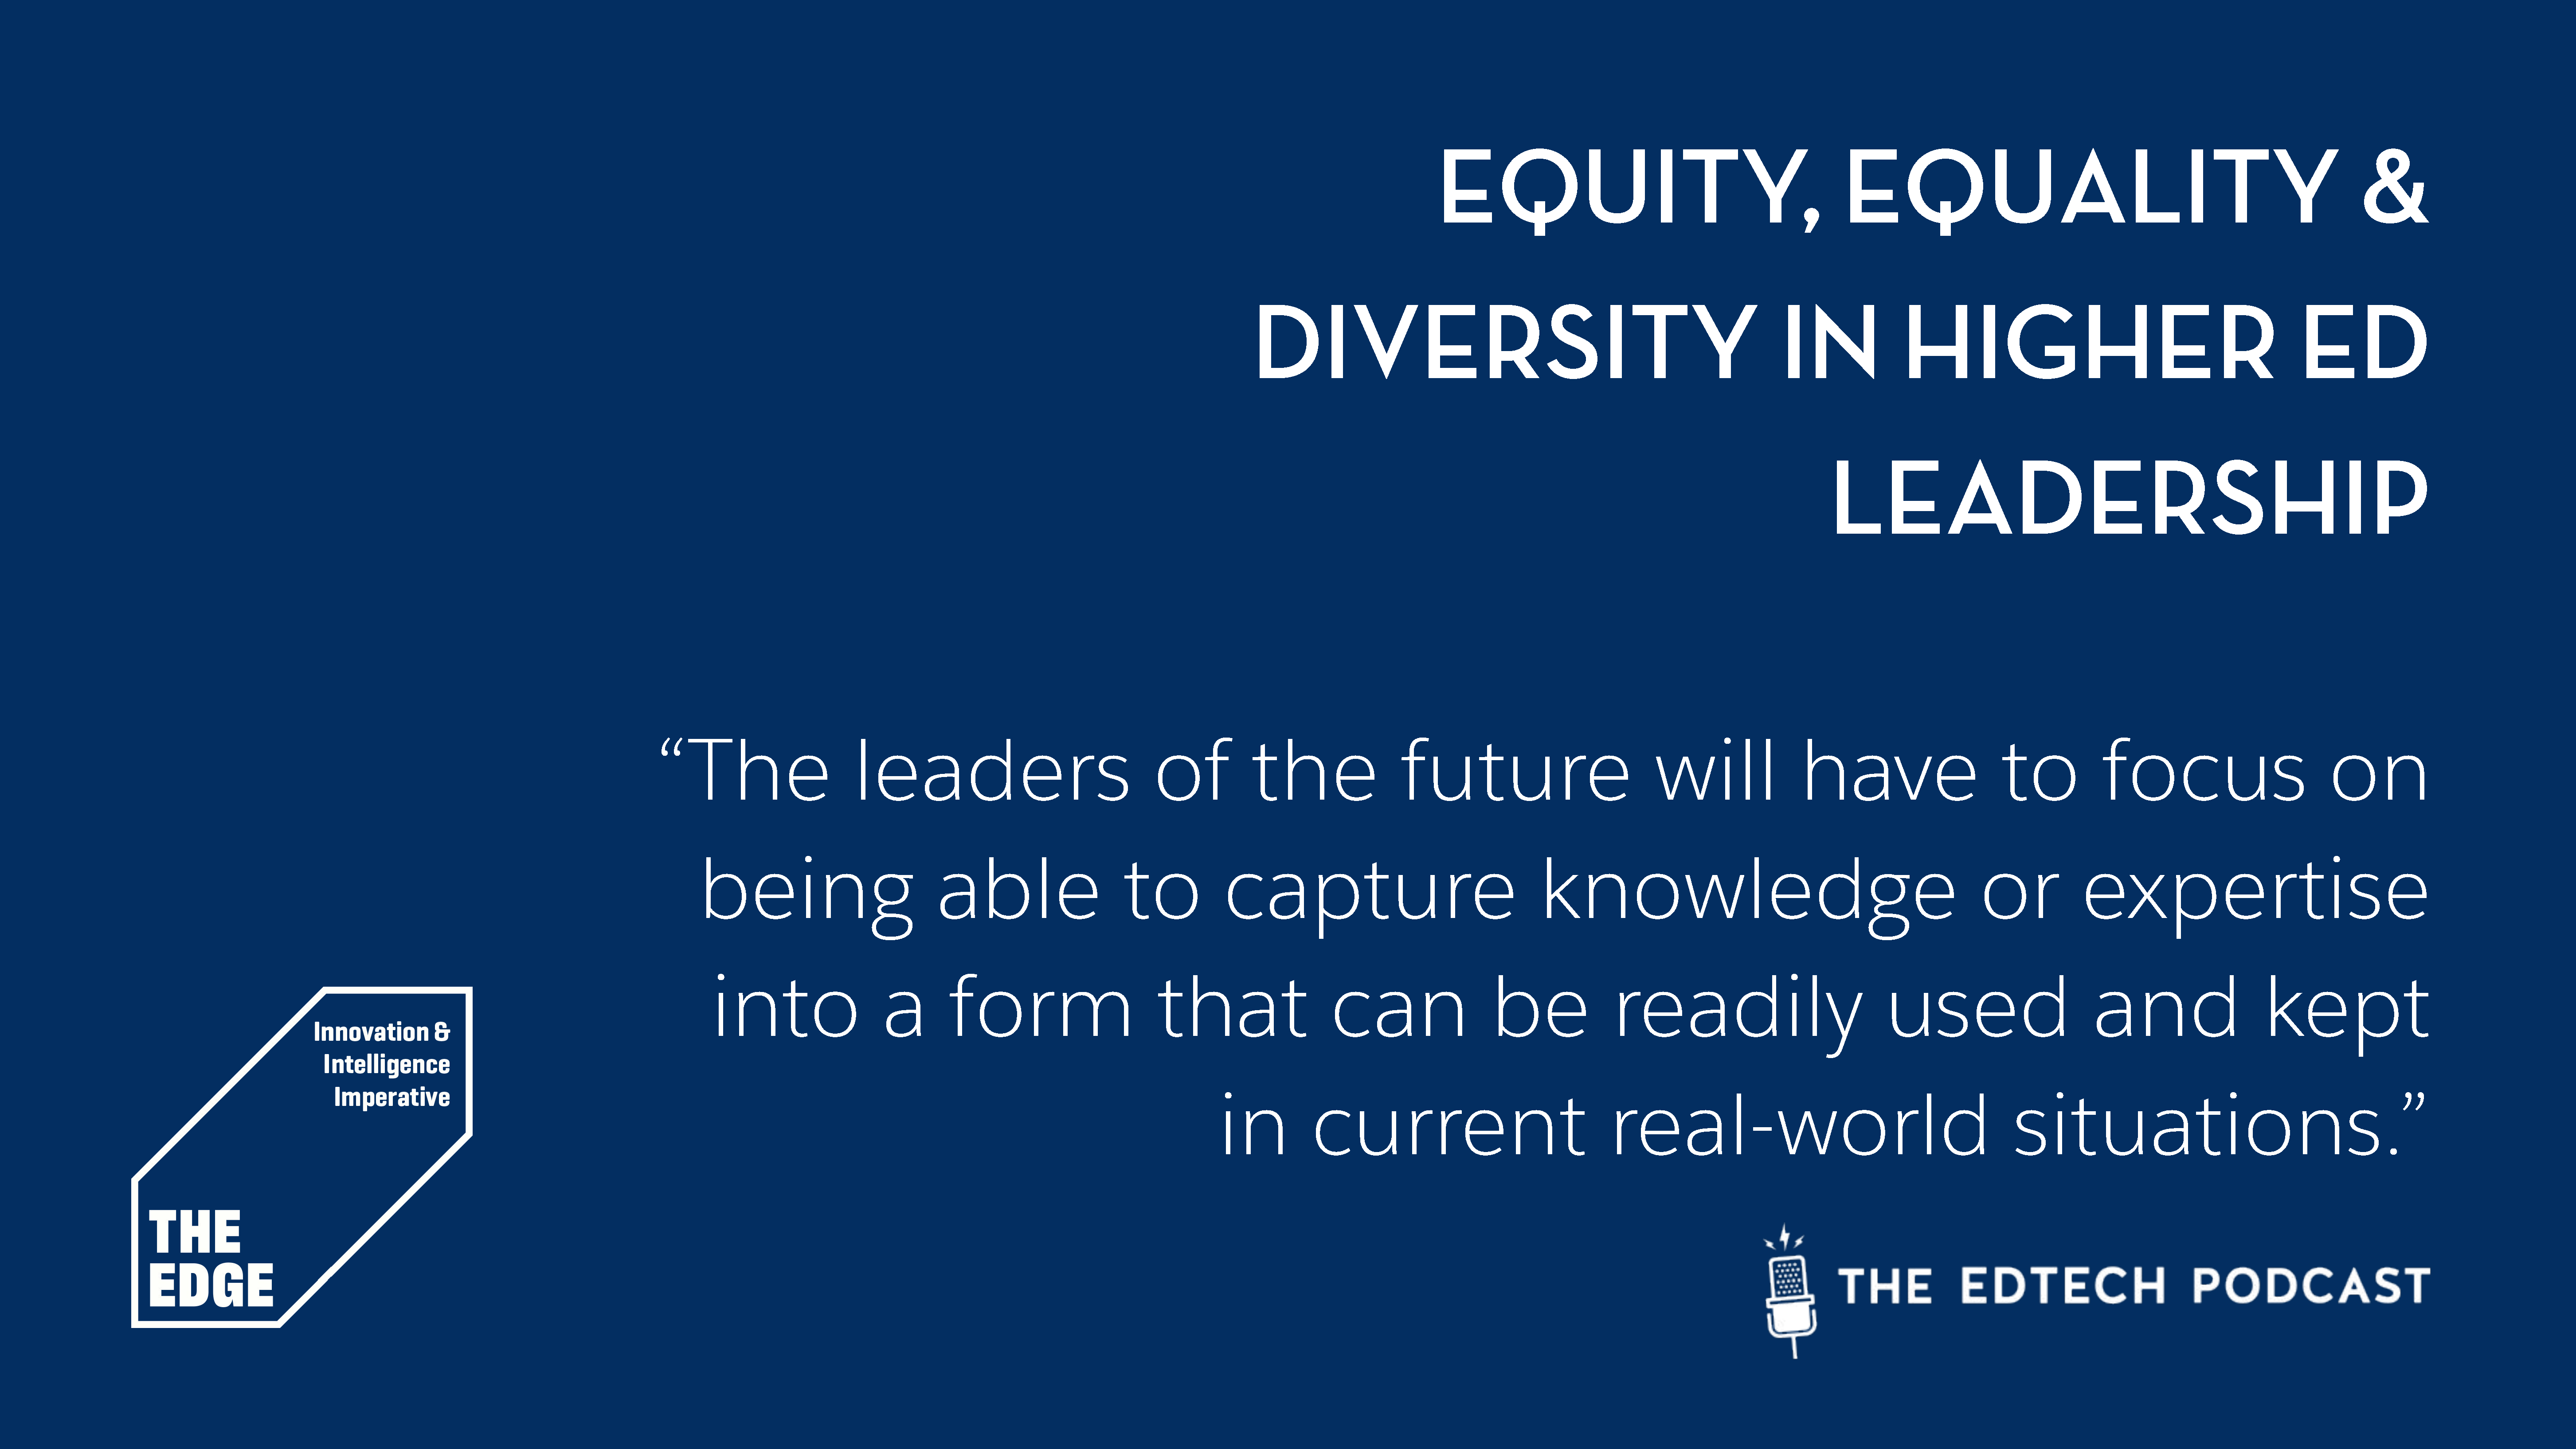 Episode 2 | Equity, Equality & Diversity in Higher Ed Leadership